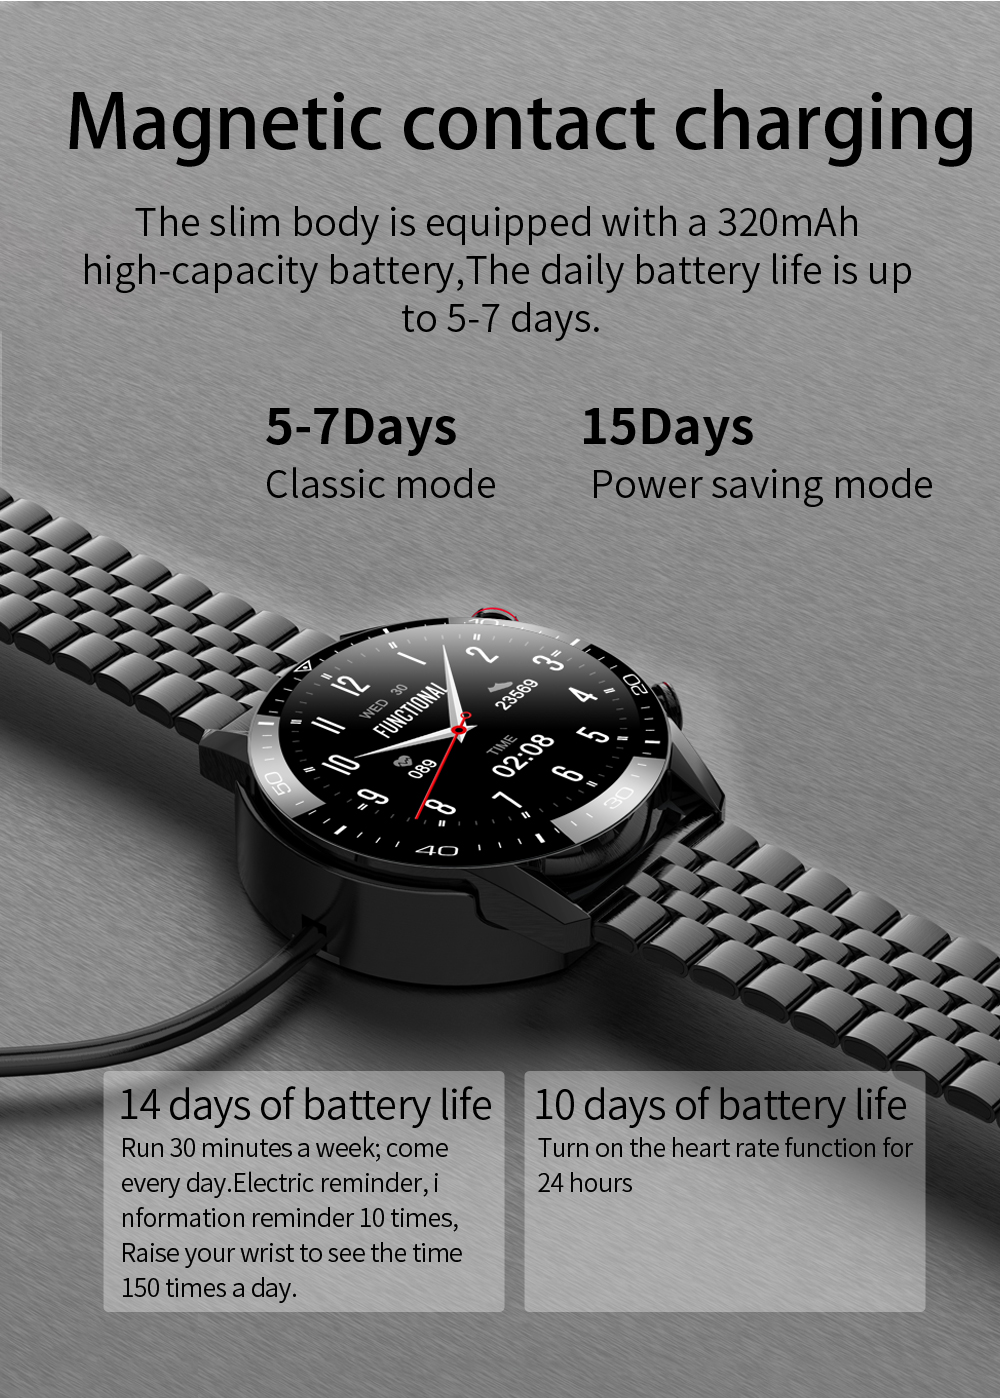 H36b269c0e3934462b53cb79c7cdaf9d3c New Smart Watch Men Bluetooth Call TK2-8 IP68 Waterproof Heart Rate Blood Pressure SmartWatch Fitness Tracker Sports Android IOS